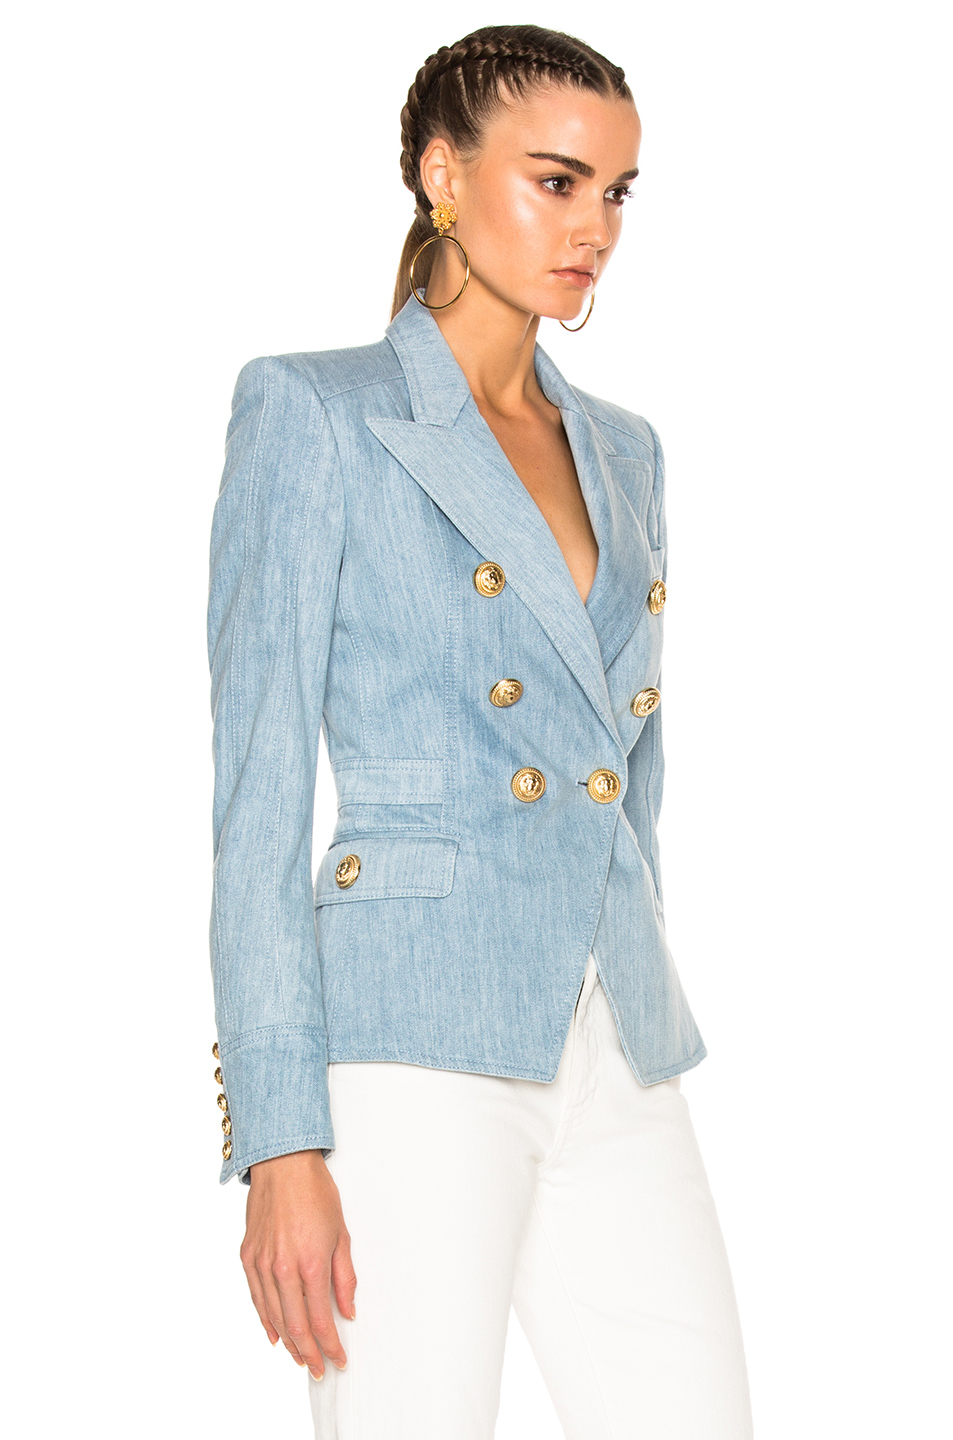 Balmain Double Breasted Blazer | White Blazer Gold Buttons | Balmain Paris Shoes